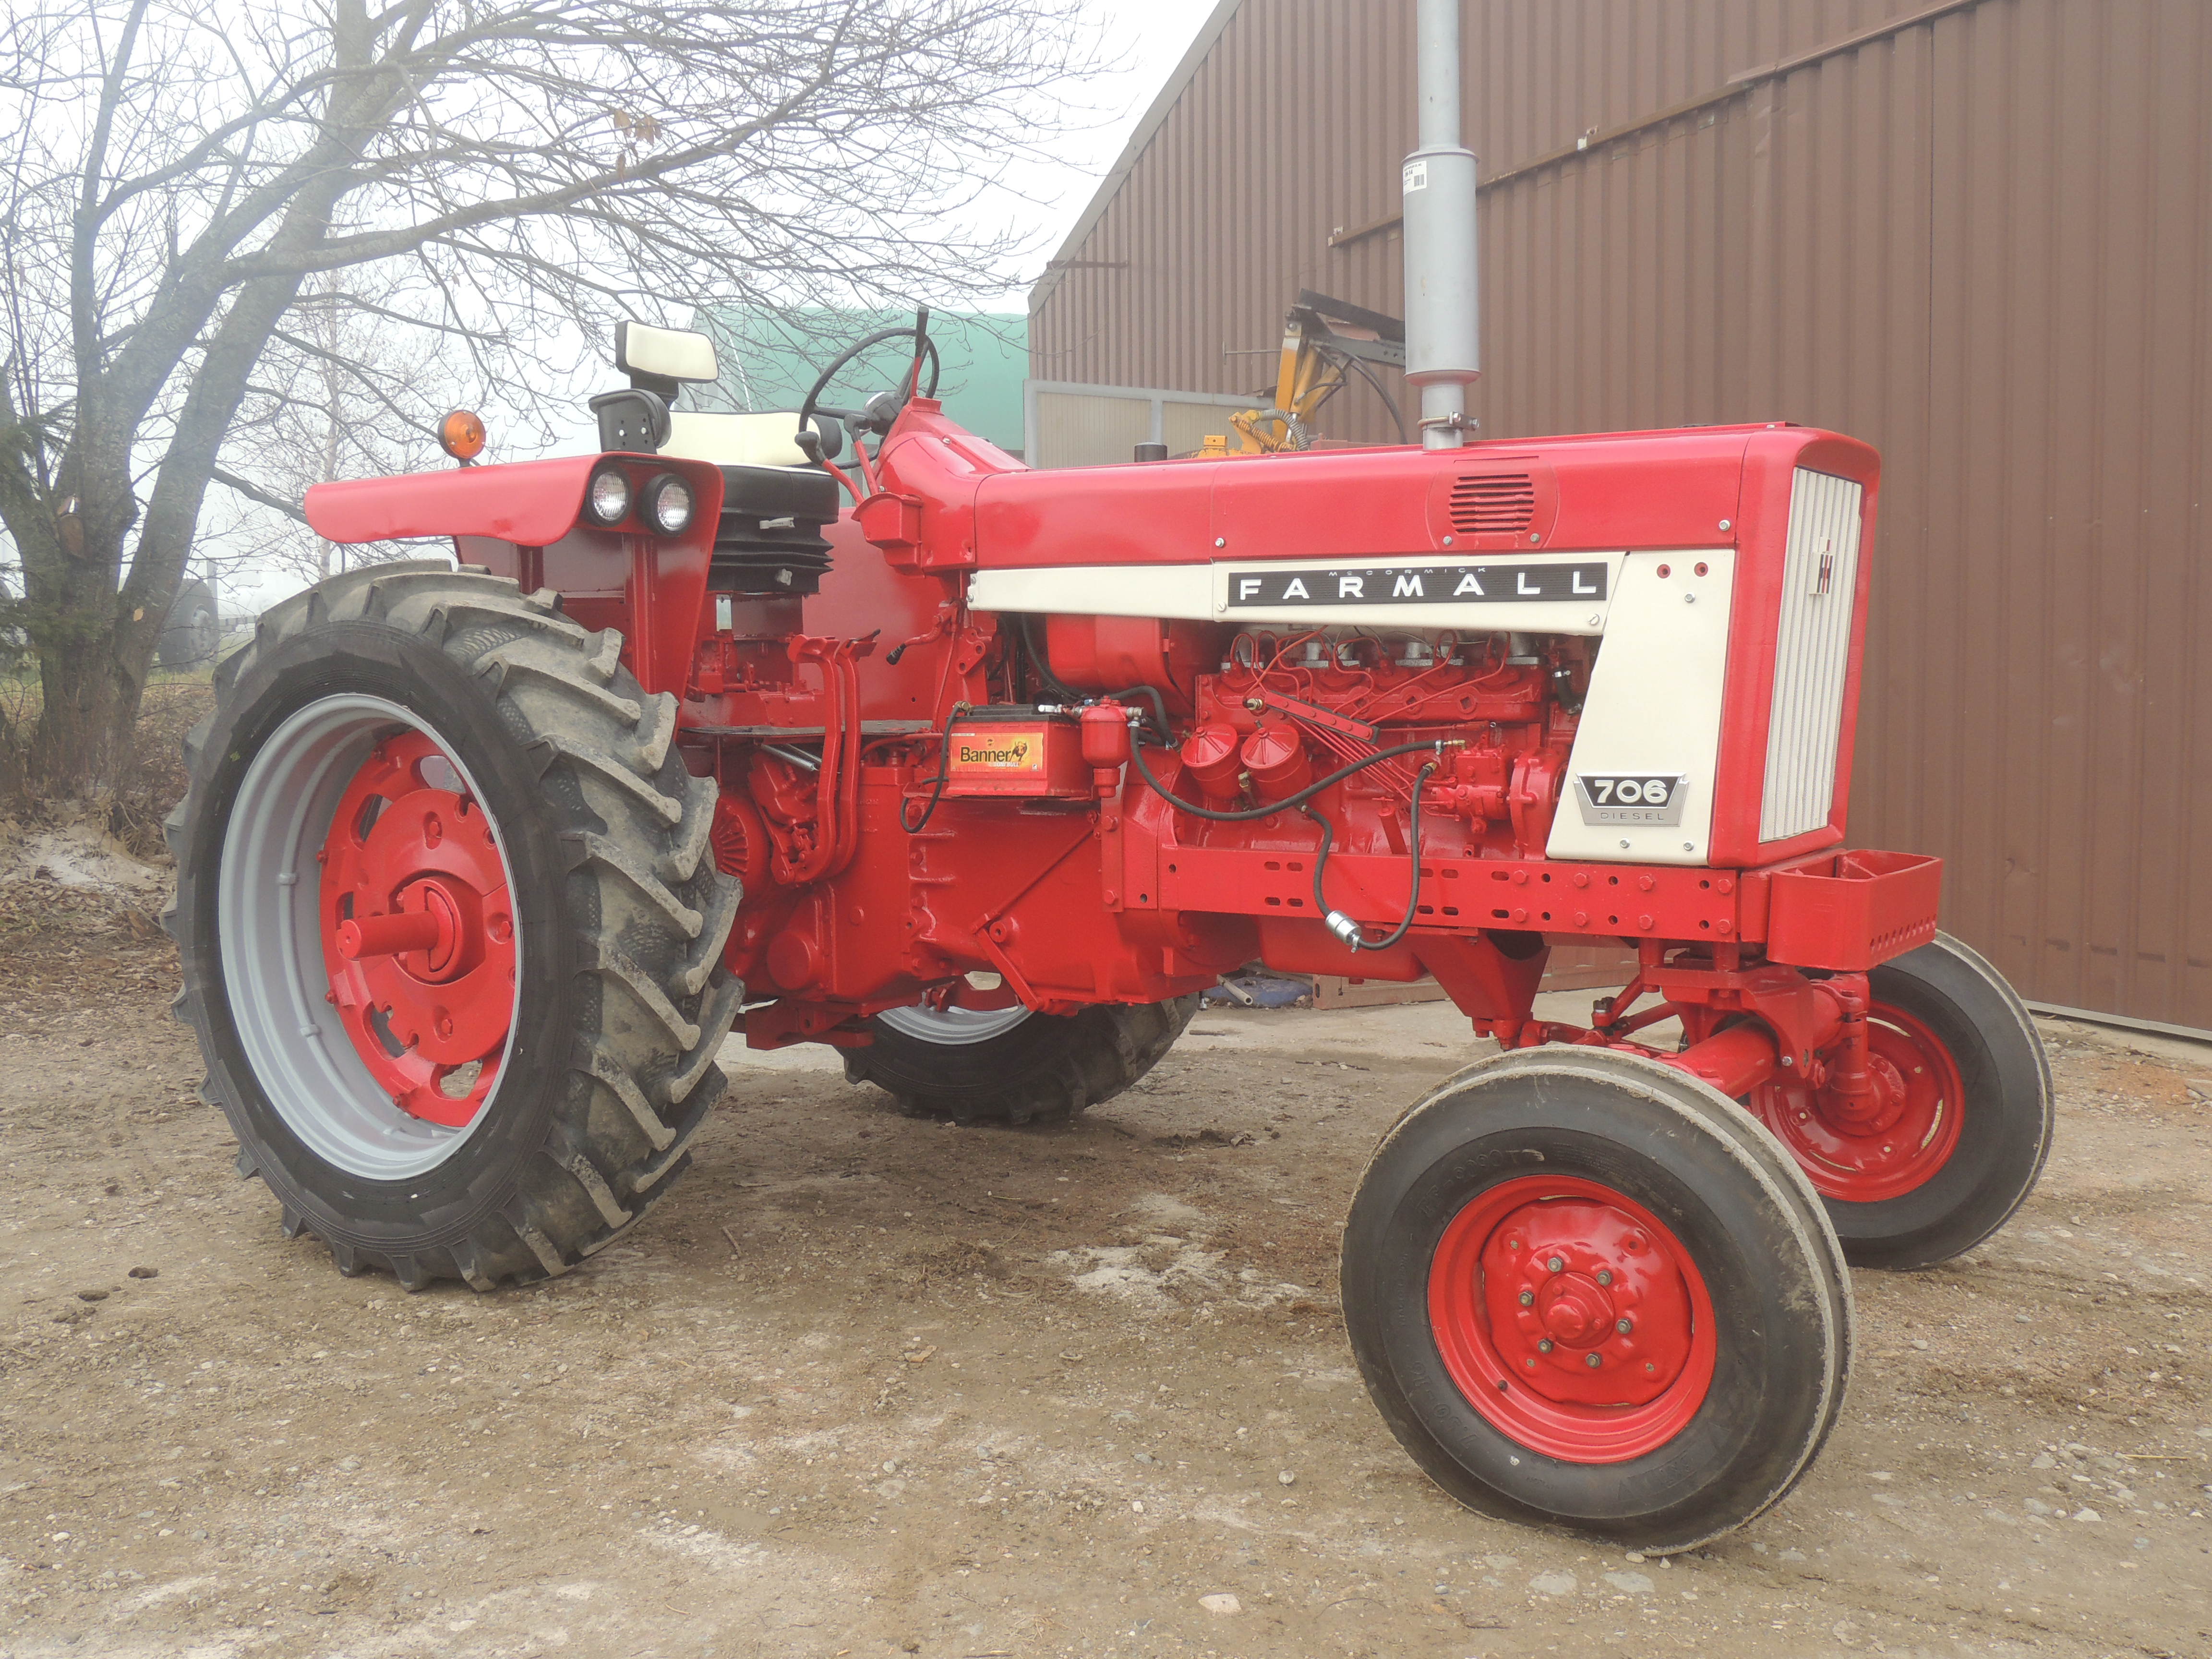 Farm All Tractor : Tractor story farmall to ford antique